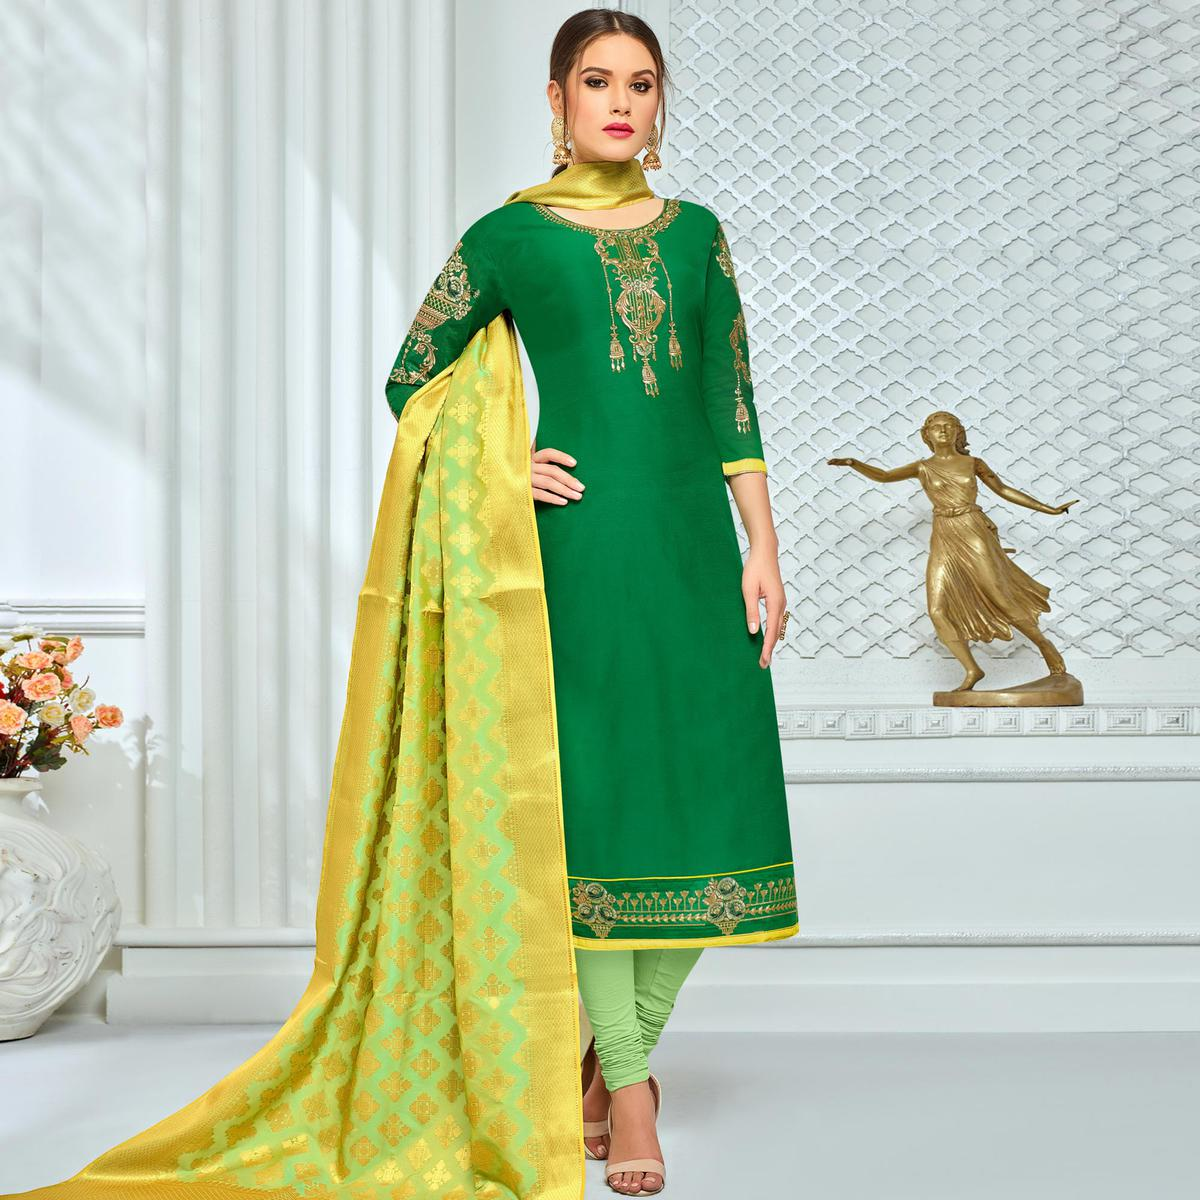 c99d6a742 Buy Lovely Green Colored Party Wear Embroidered Chanderi Silk Suit for  women s online India